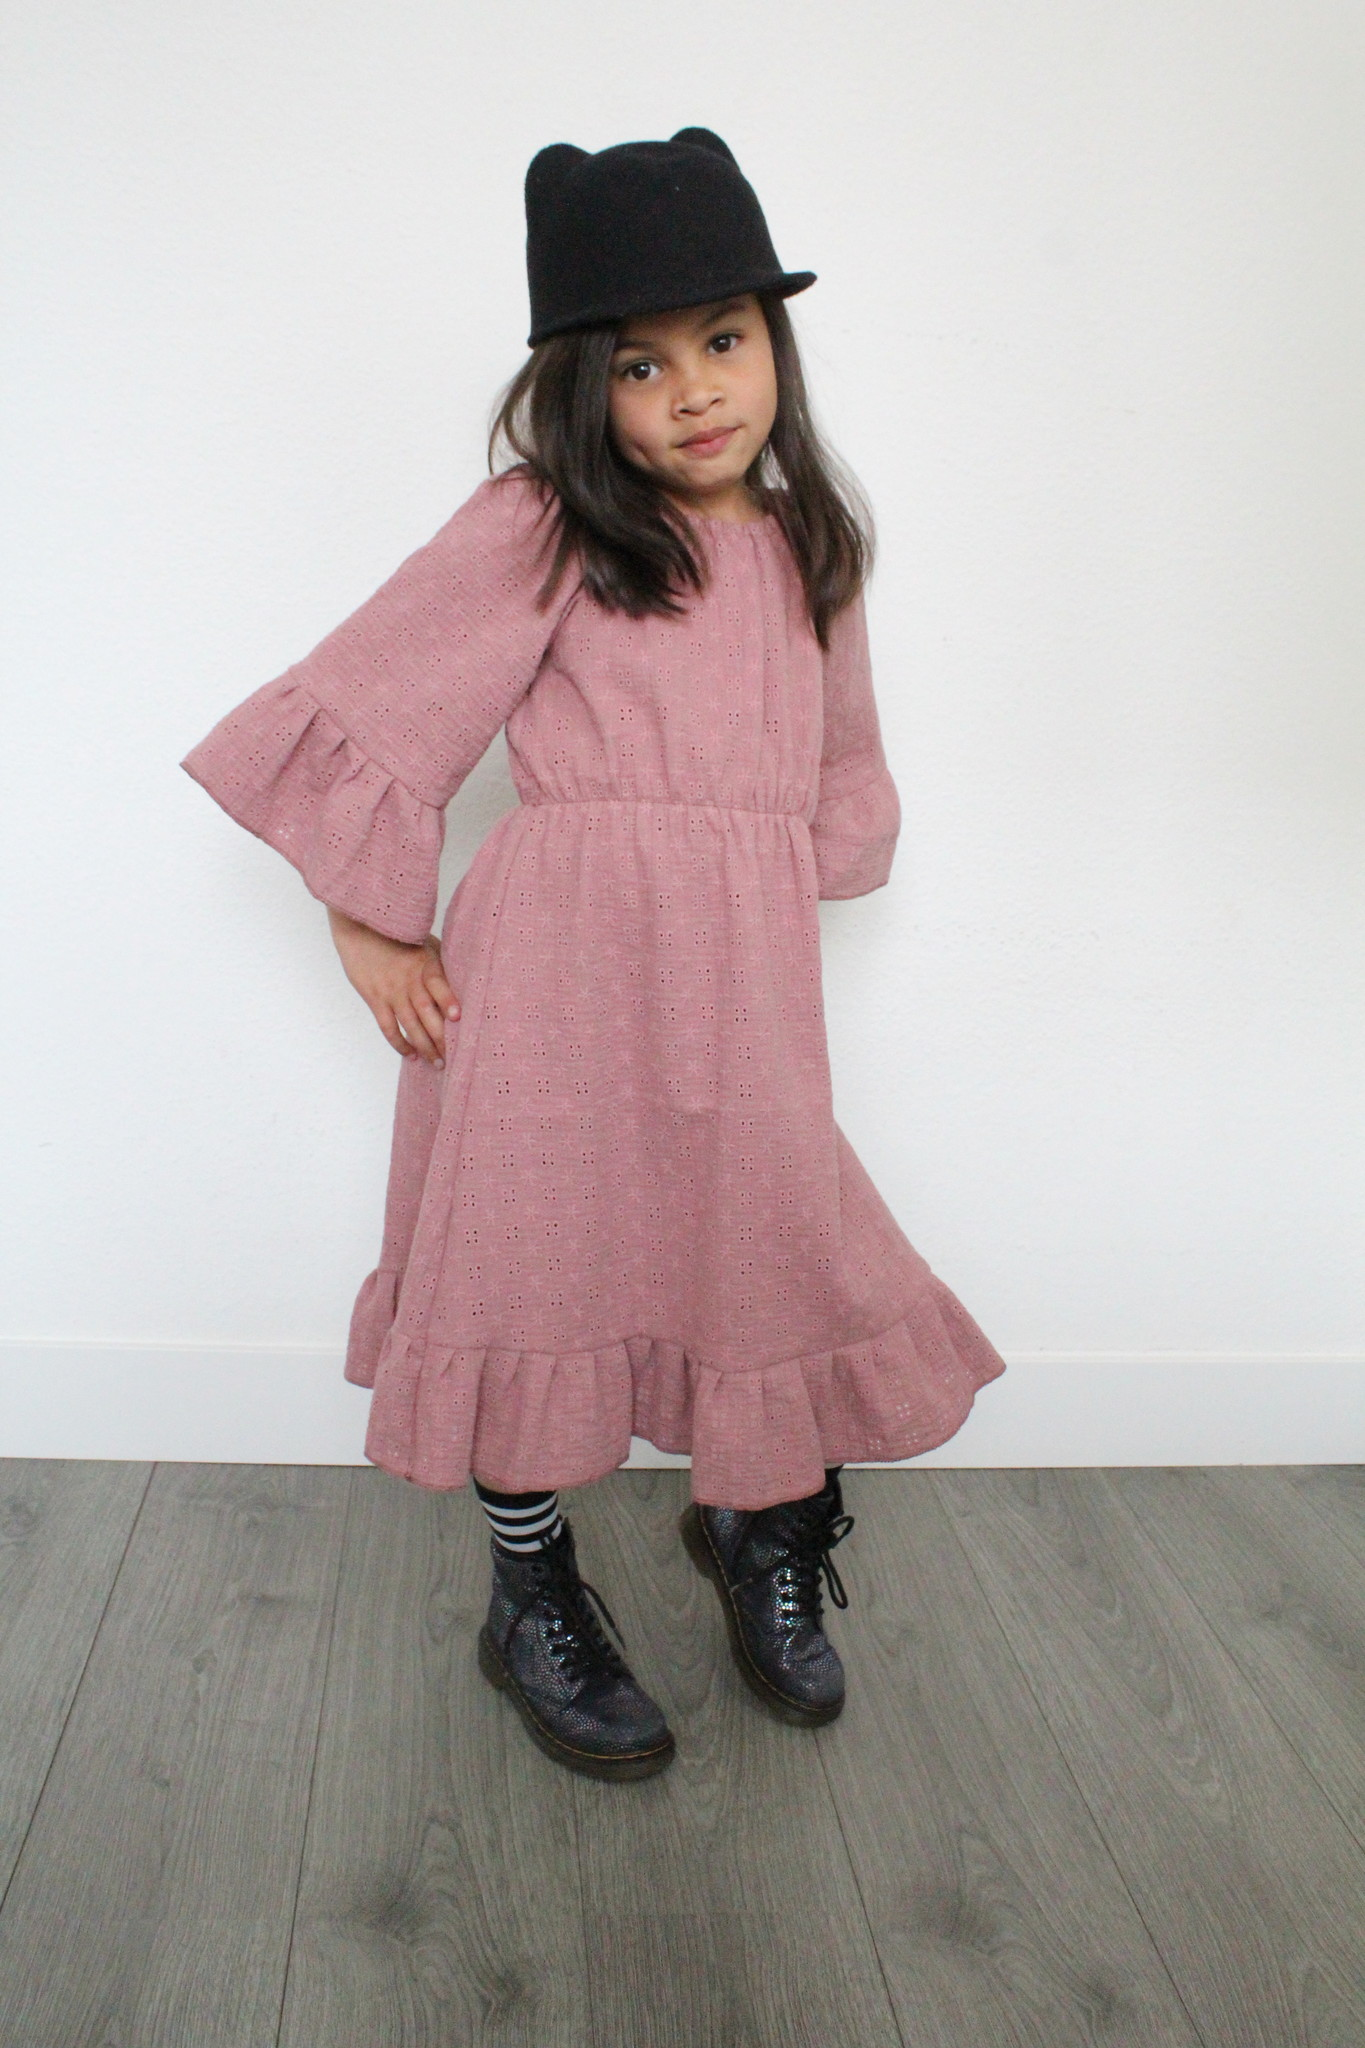 Zoofs DRESS FOR GIRLS | DRESS WITH DRILLING | GIRL CLOTHES